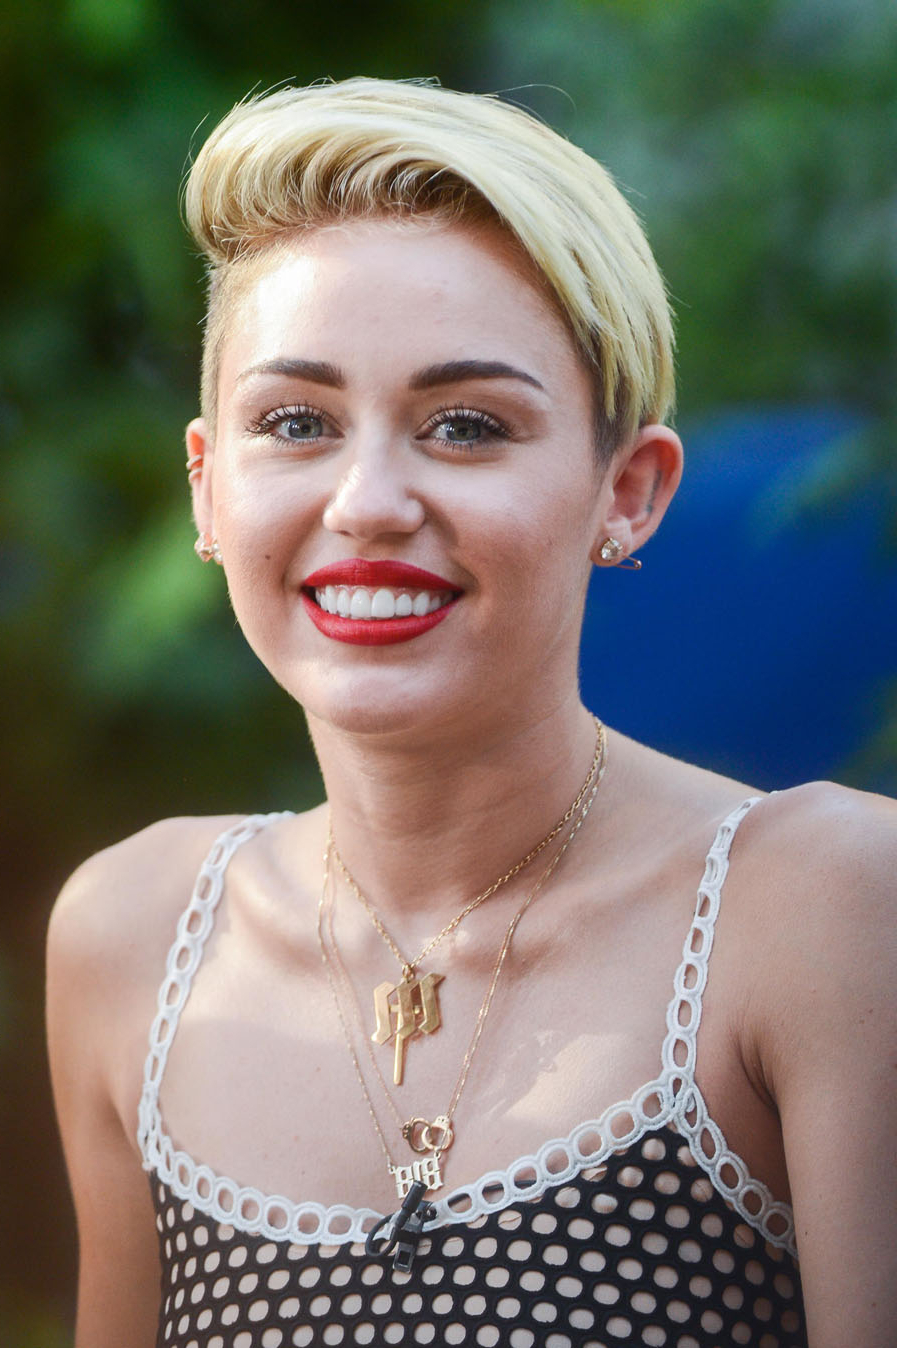 Miley Cyrus Is Already Sick Of Her Short Hair   Stylecaster In Short Haircuts Like Miley Cyrus (View 2 of 25)